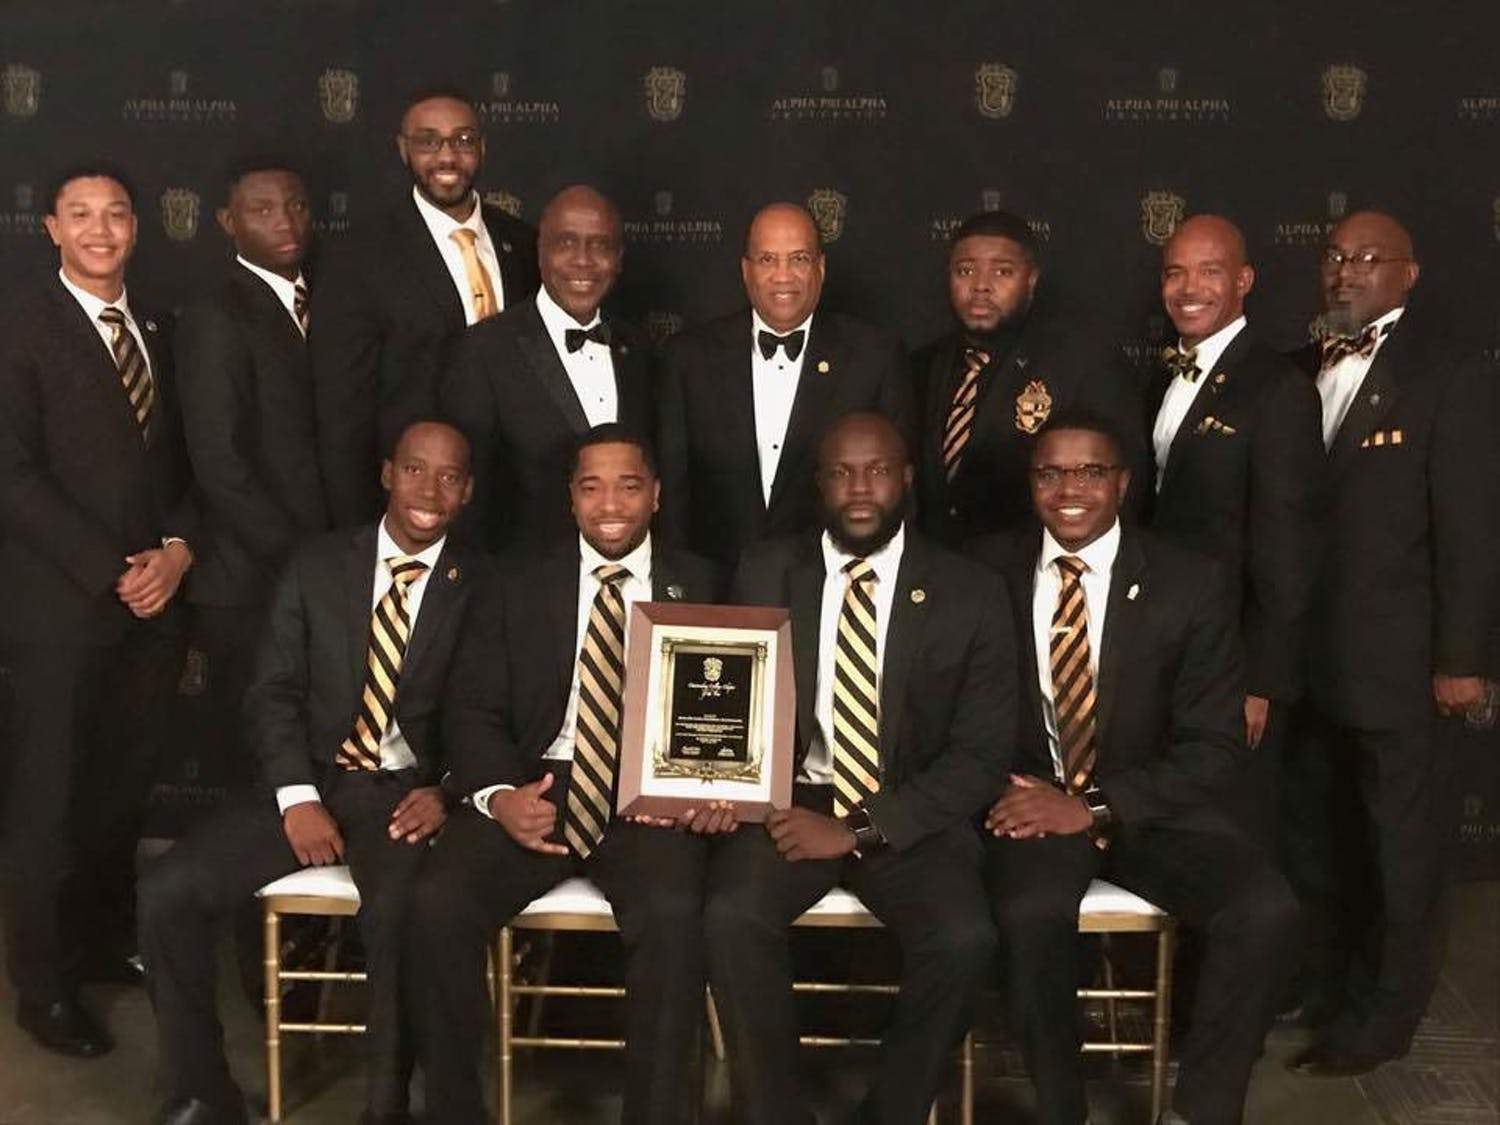 The brothers of the Theta Sigma chapter of the Alpha Phi Alpha Fraternity attended the international conference in Baltimore on July 16. They won chapter of the year for the second time, with the first time being in 2010.